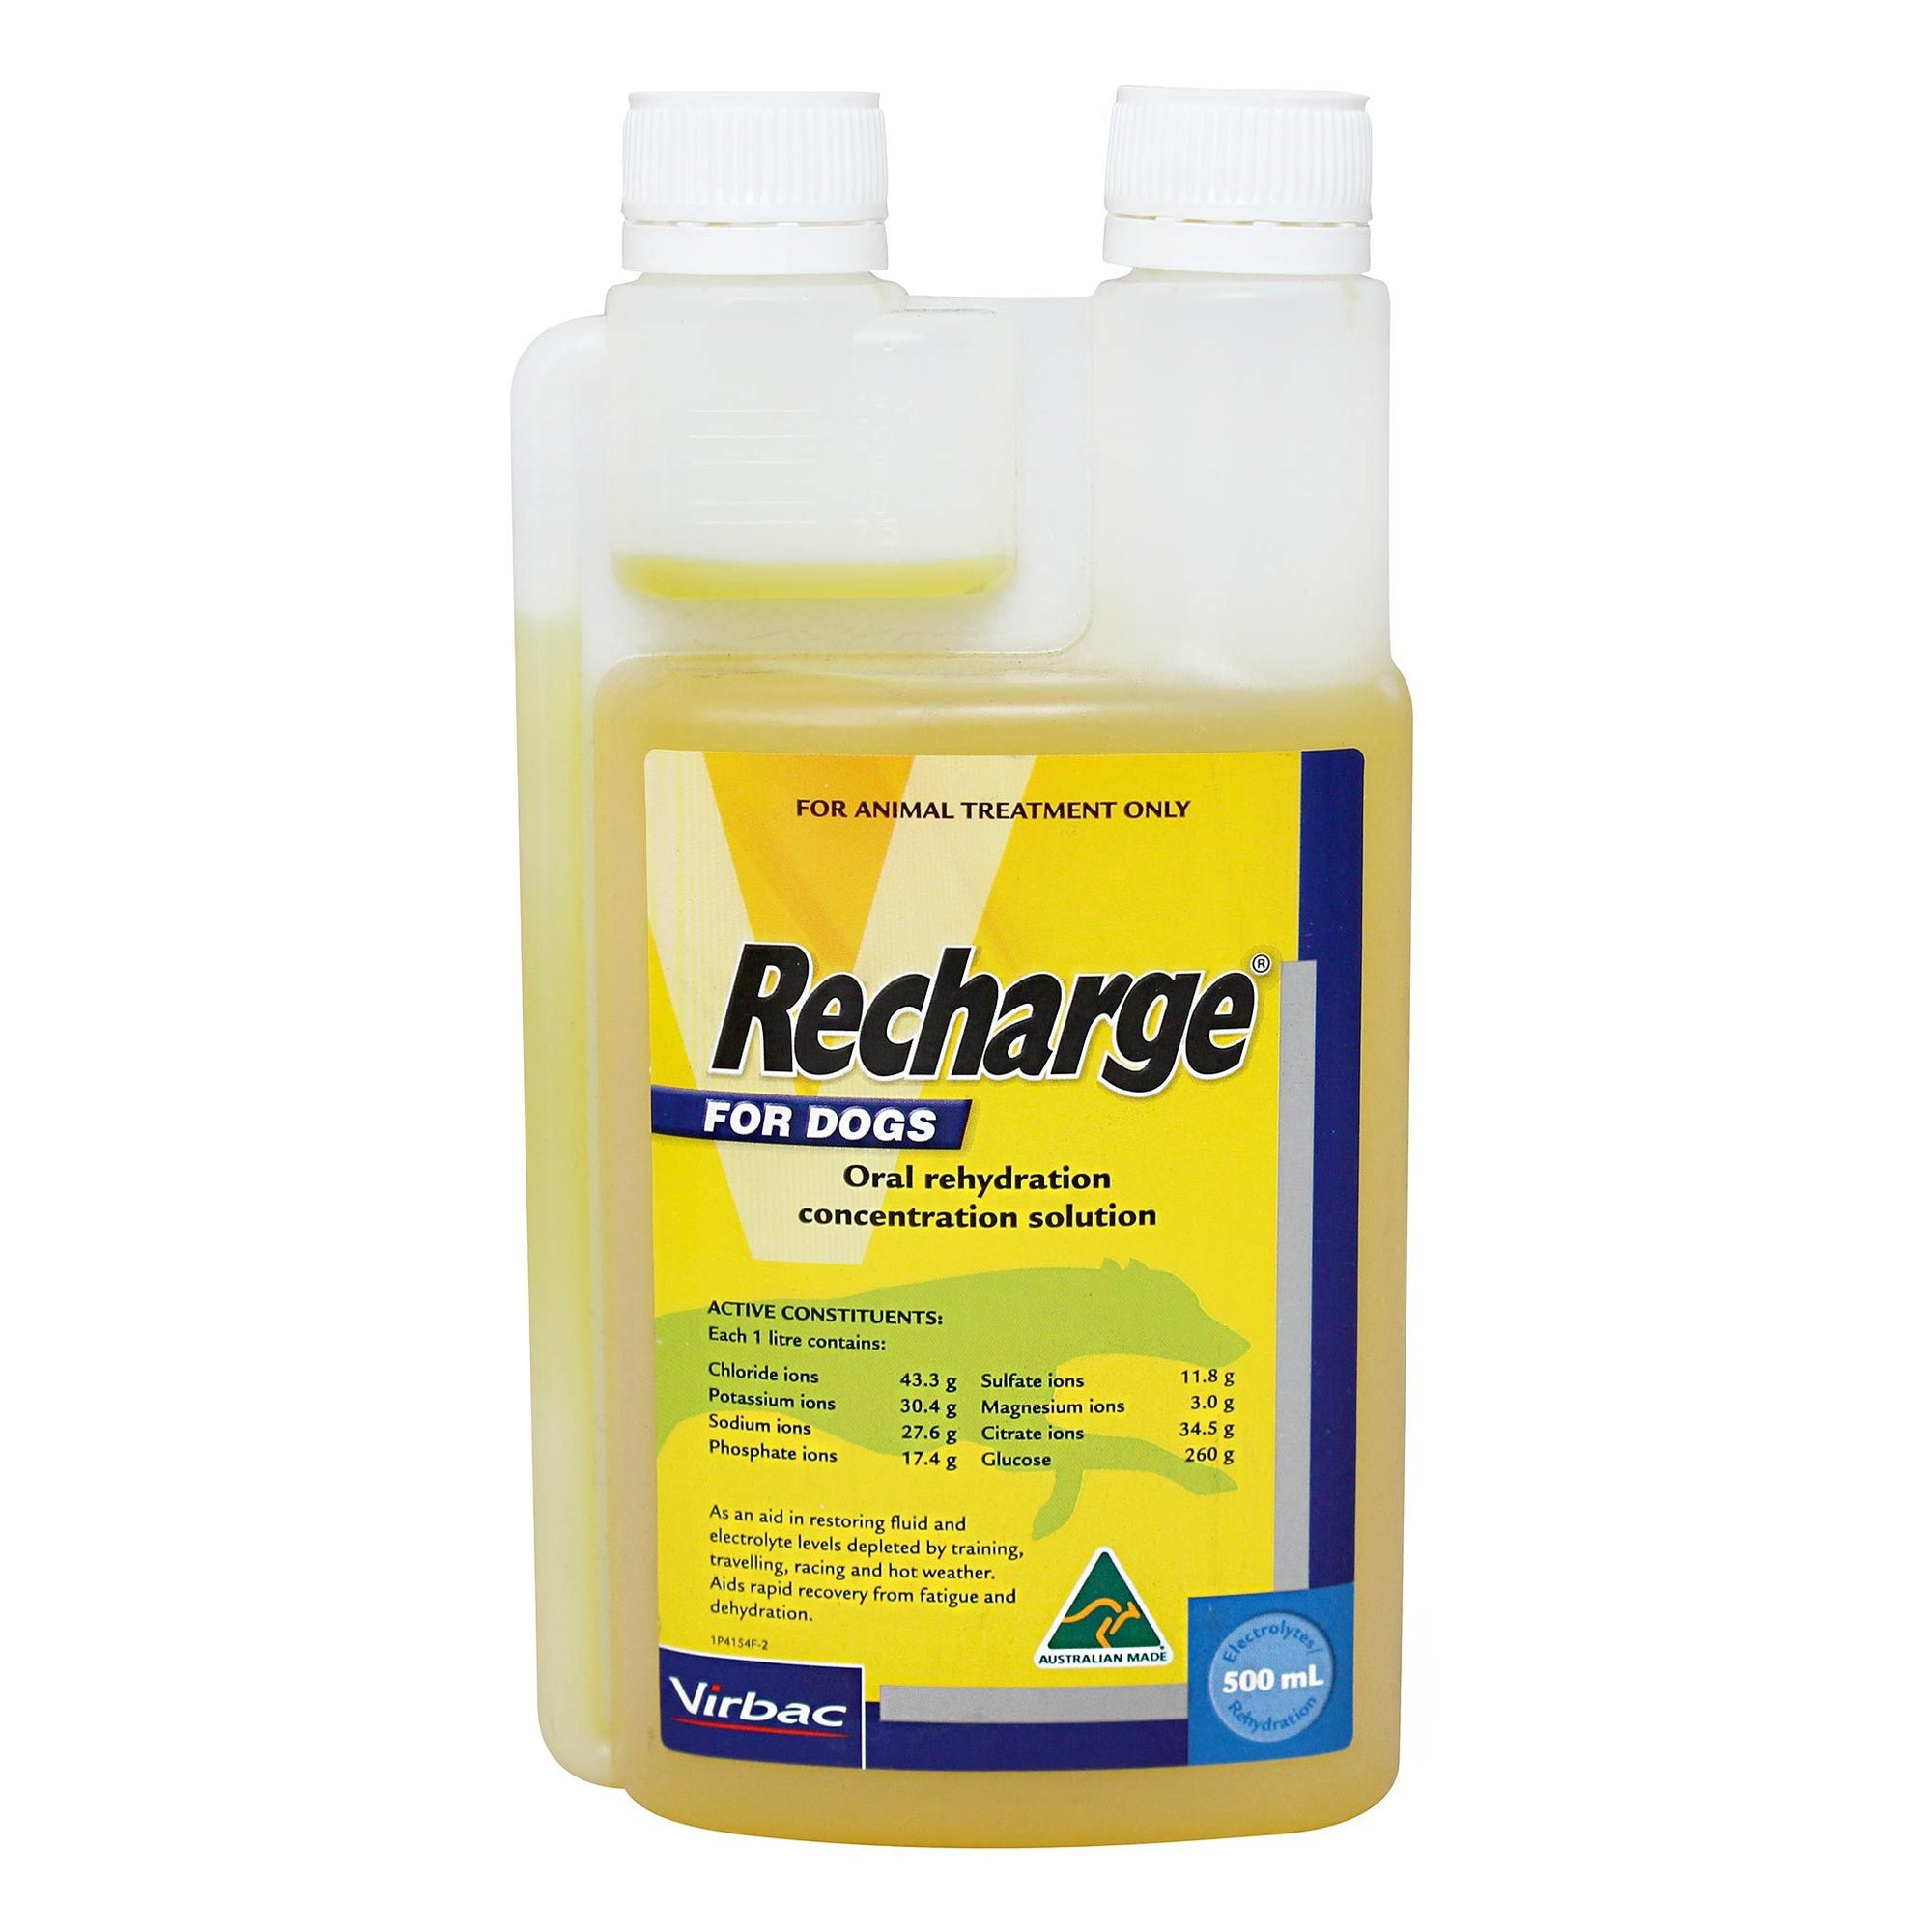 Virbac Recharge for Dogs 1ltr